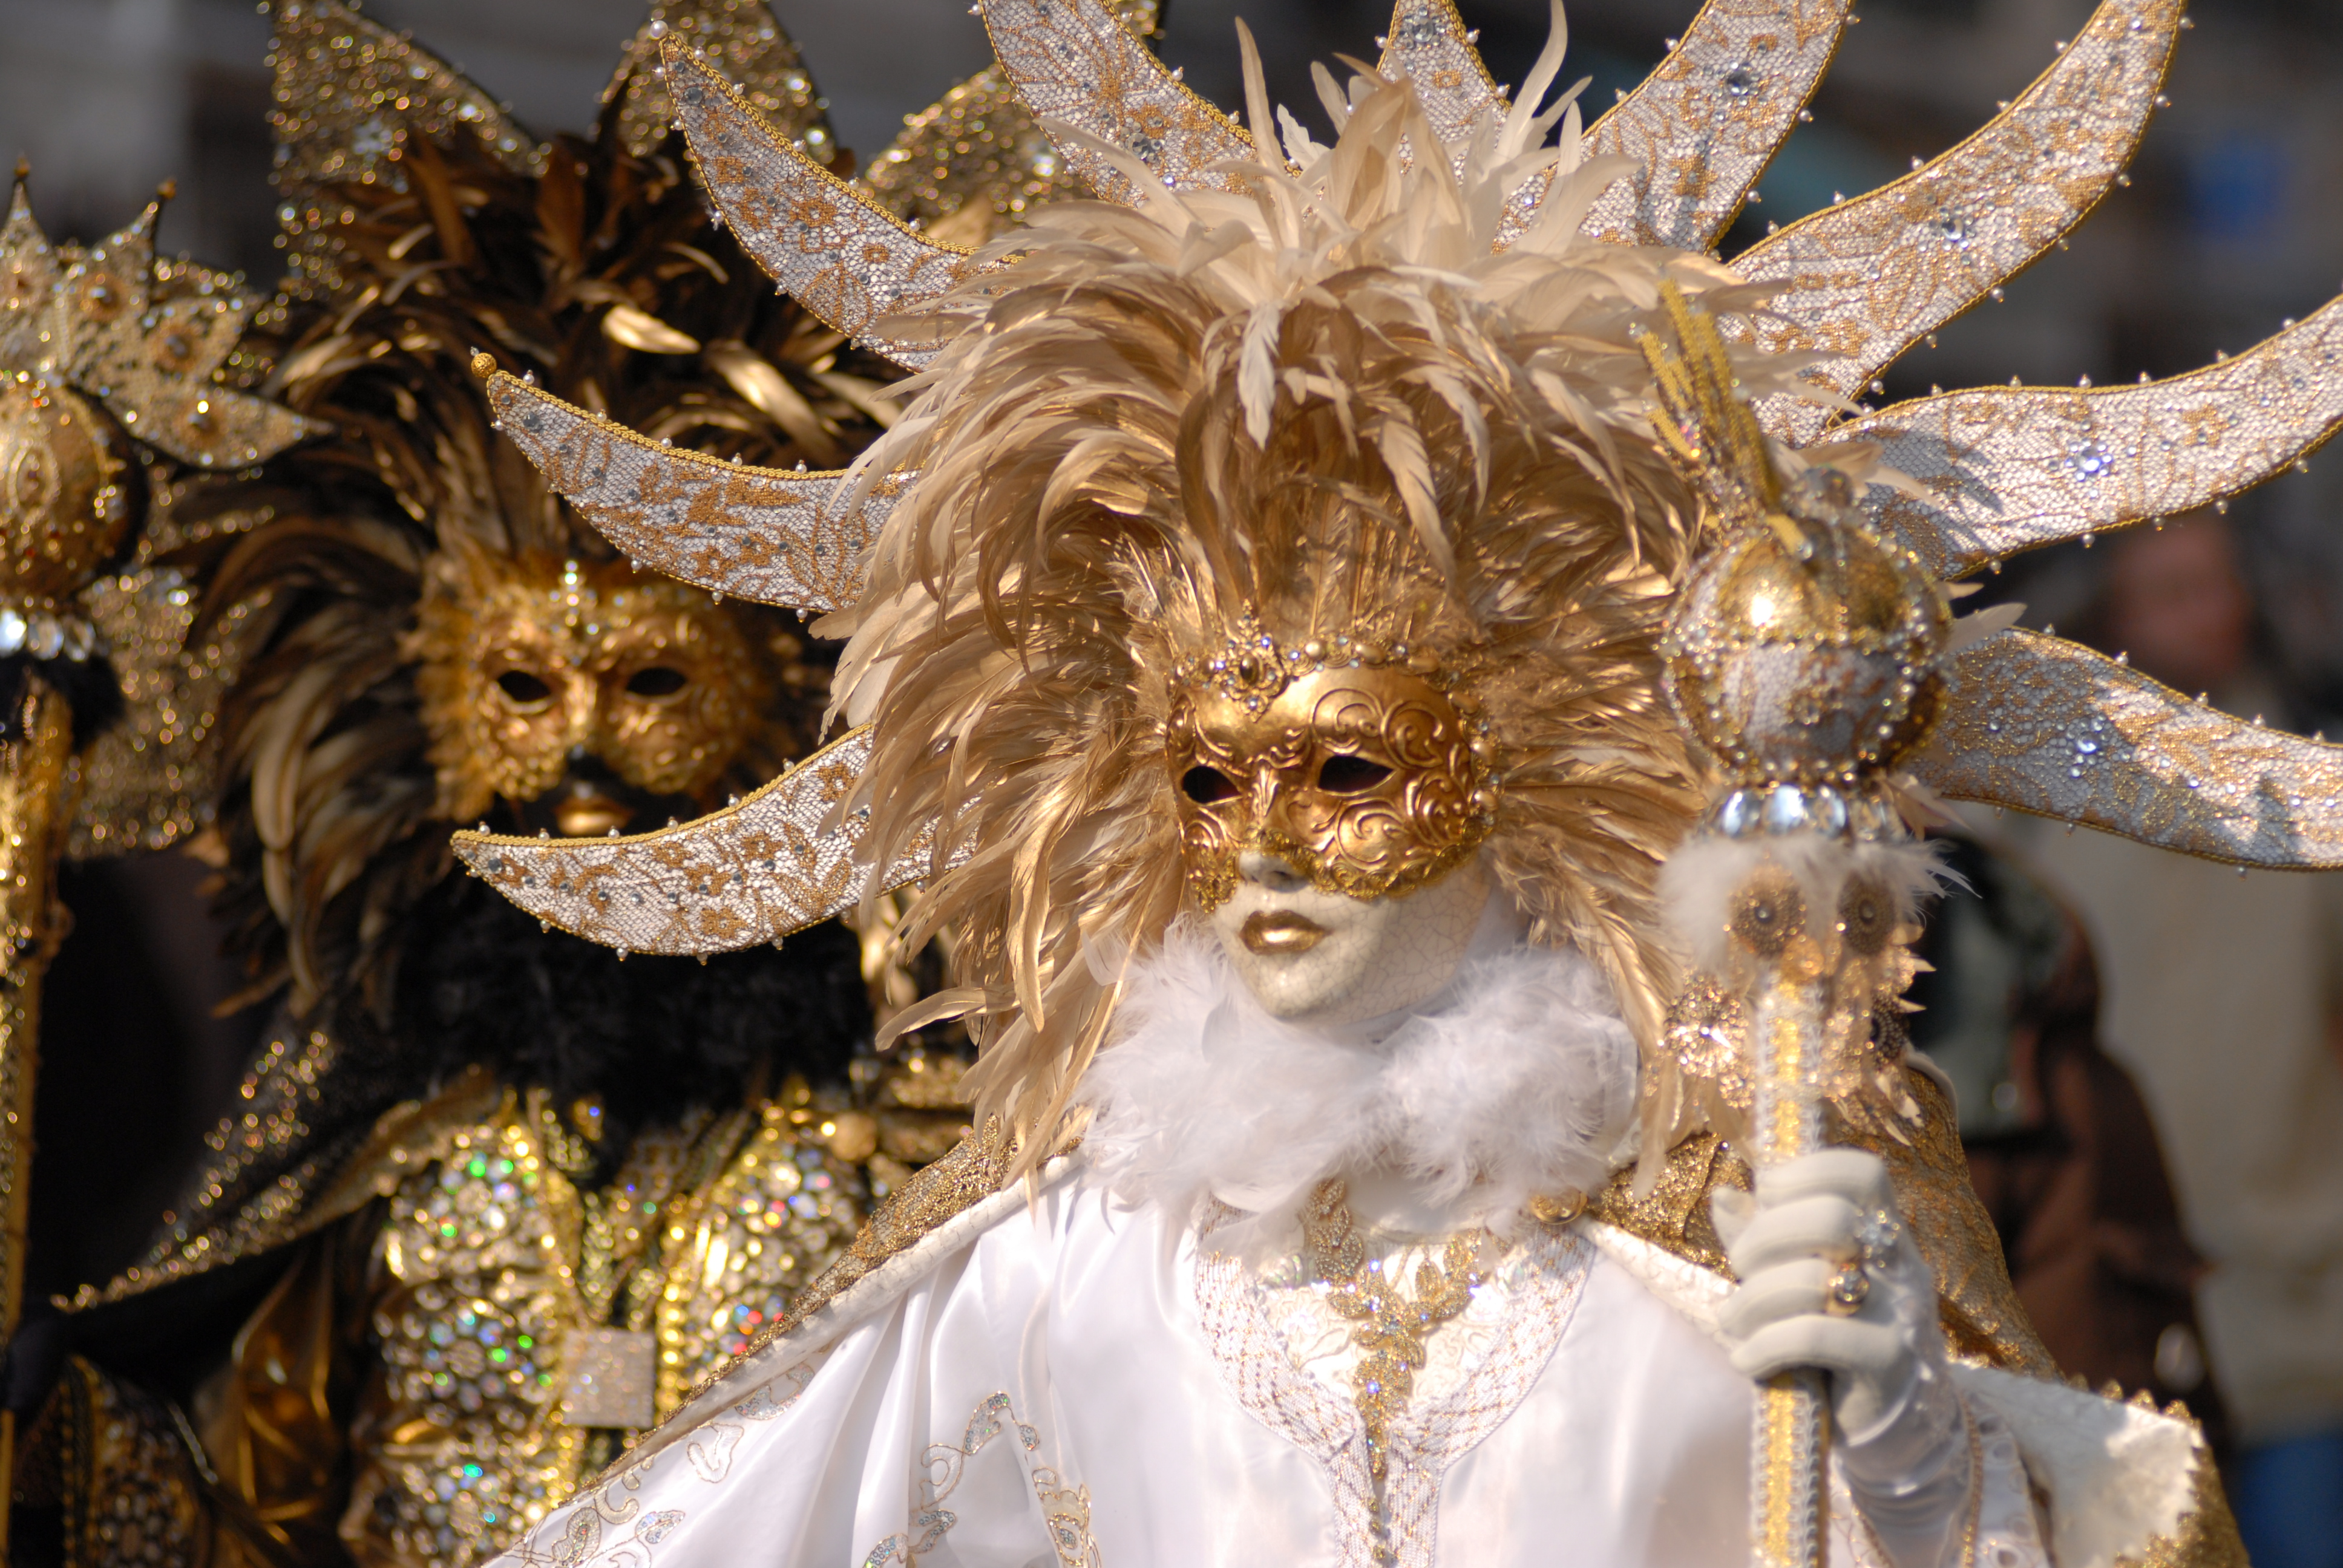 Masked ball participant at Venice Carnival 2010